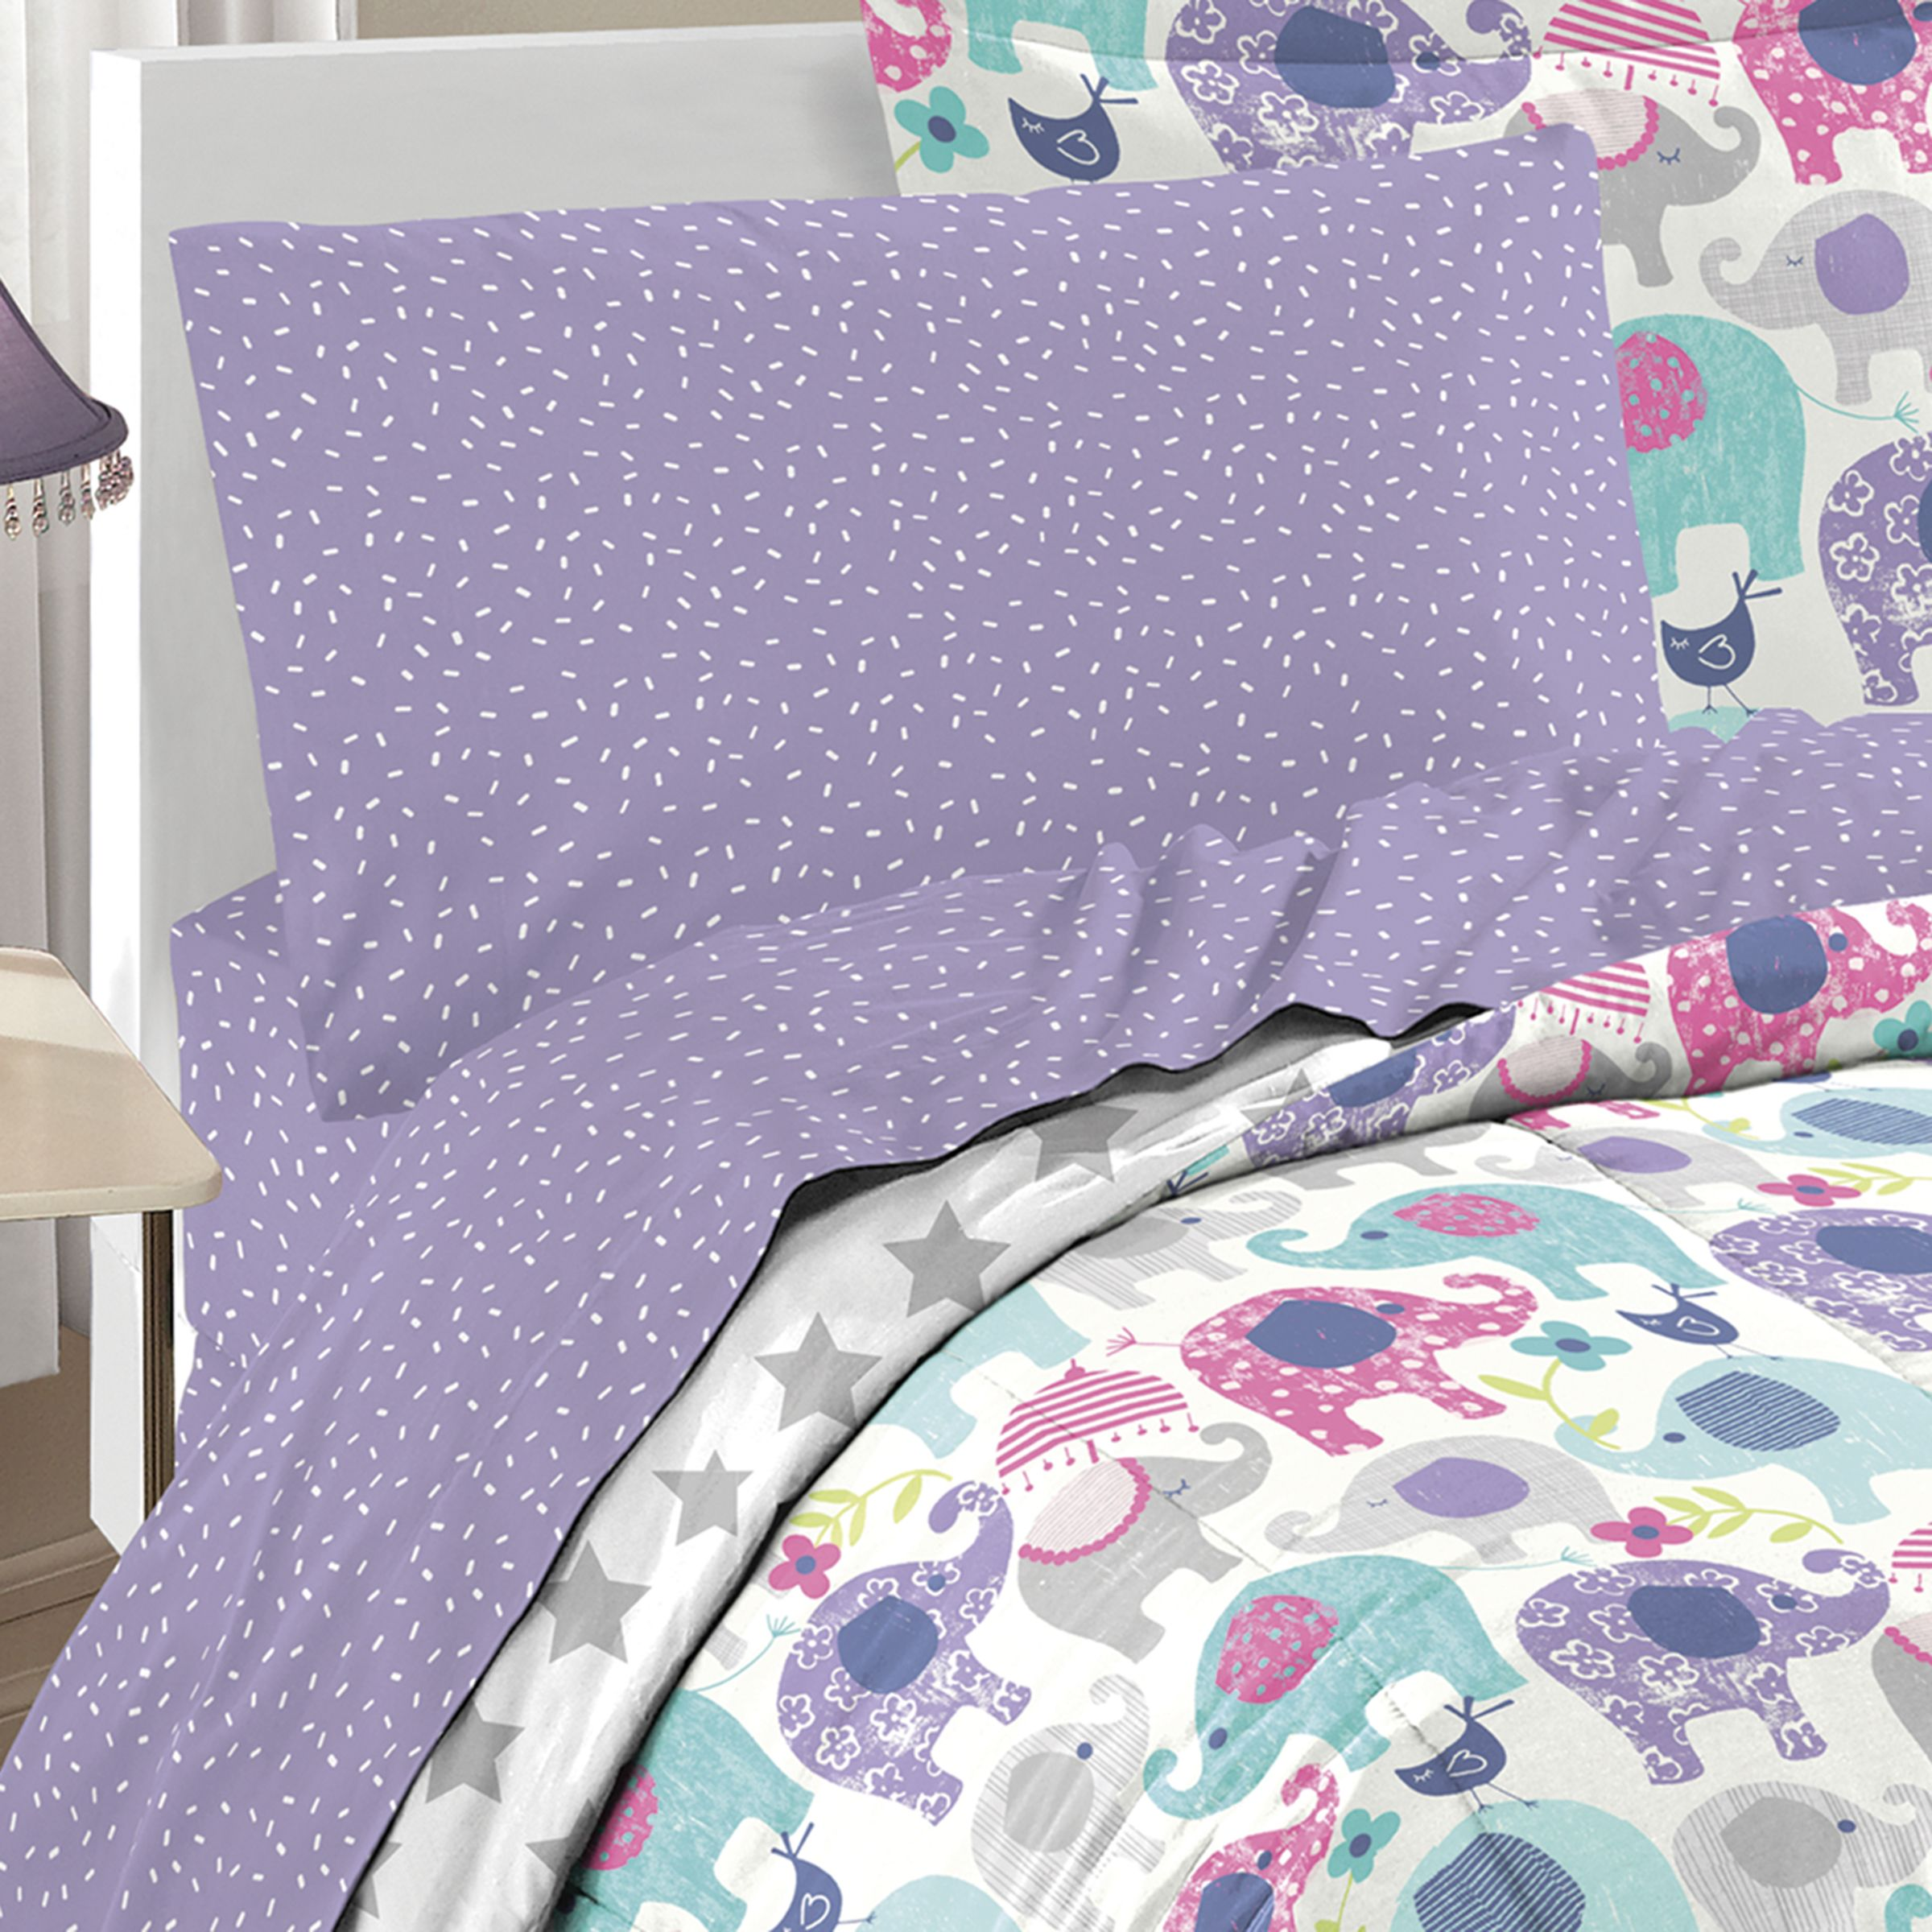 Britannica home fashions tencel sheets - Purple Pink Elephant Bedding For Girls Twin Or Full Bed In A Bag Comforter And Sheet